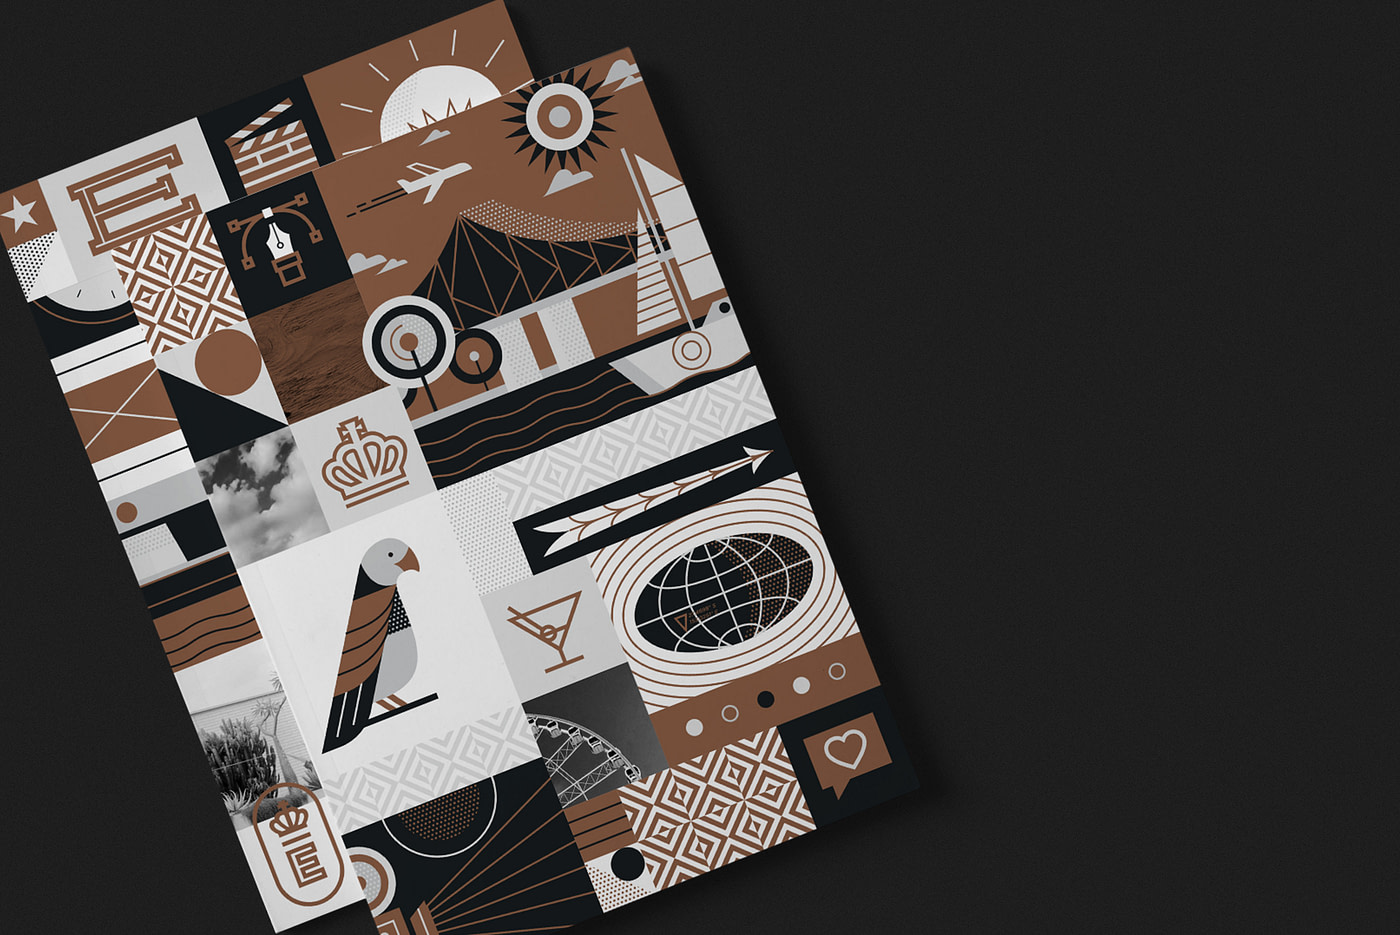 Brown, grey and white illustration montage atop a black background